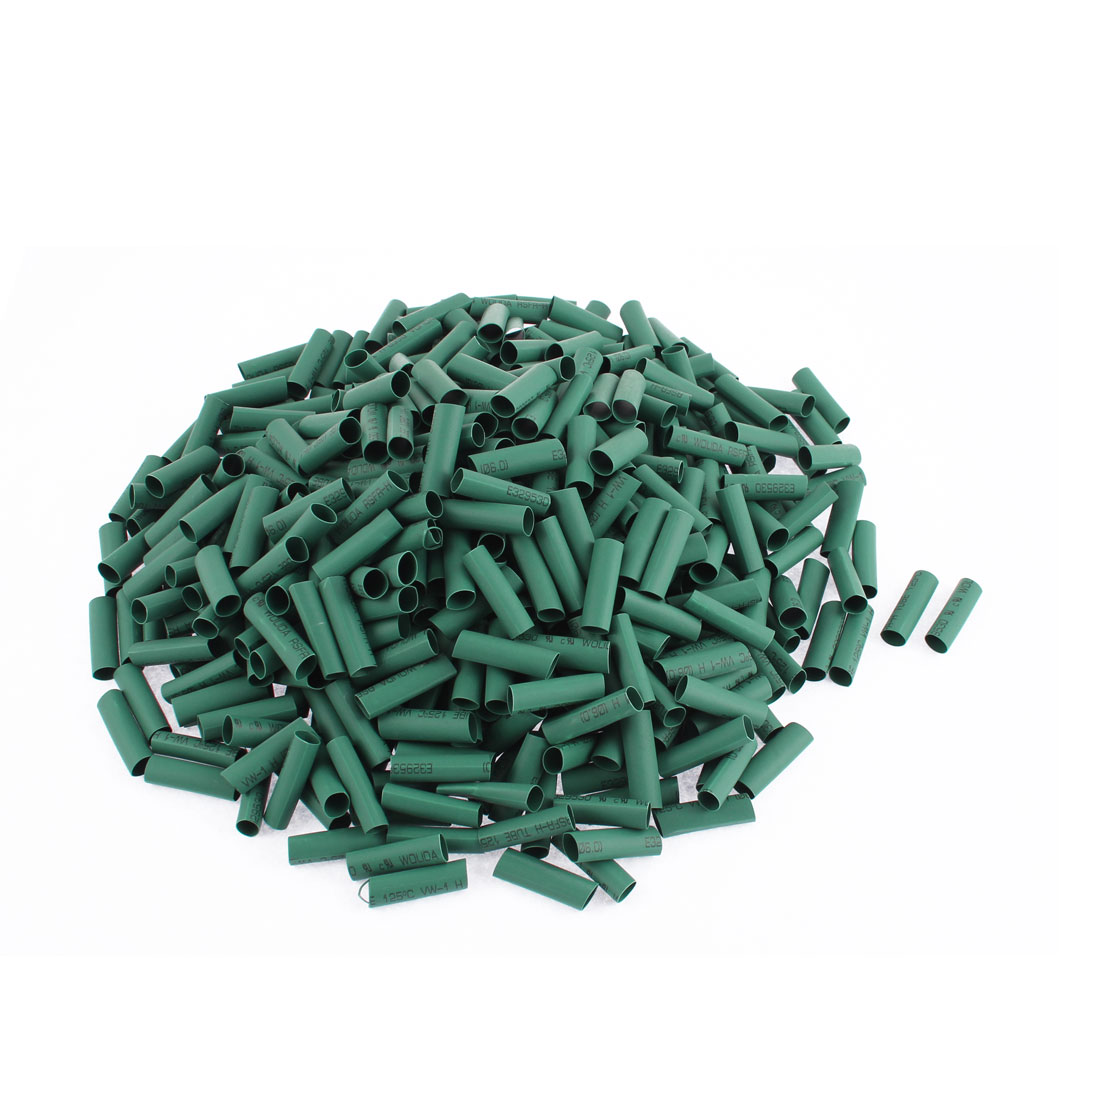 "Electrical Connection Cable Sleeve 1"" Length Heat Shrink Tubing Green 500Pcs"